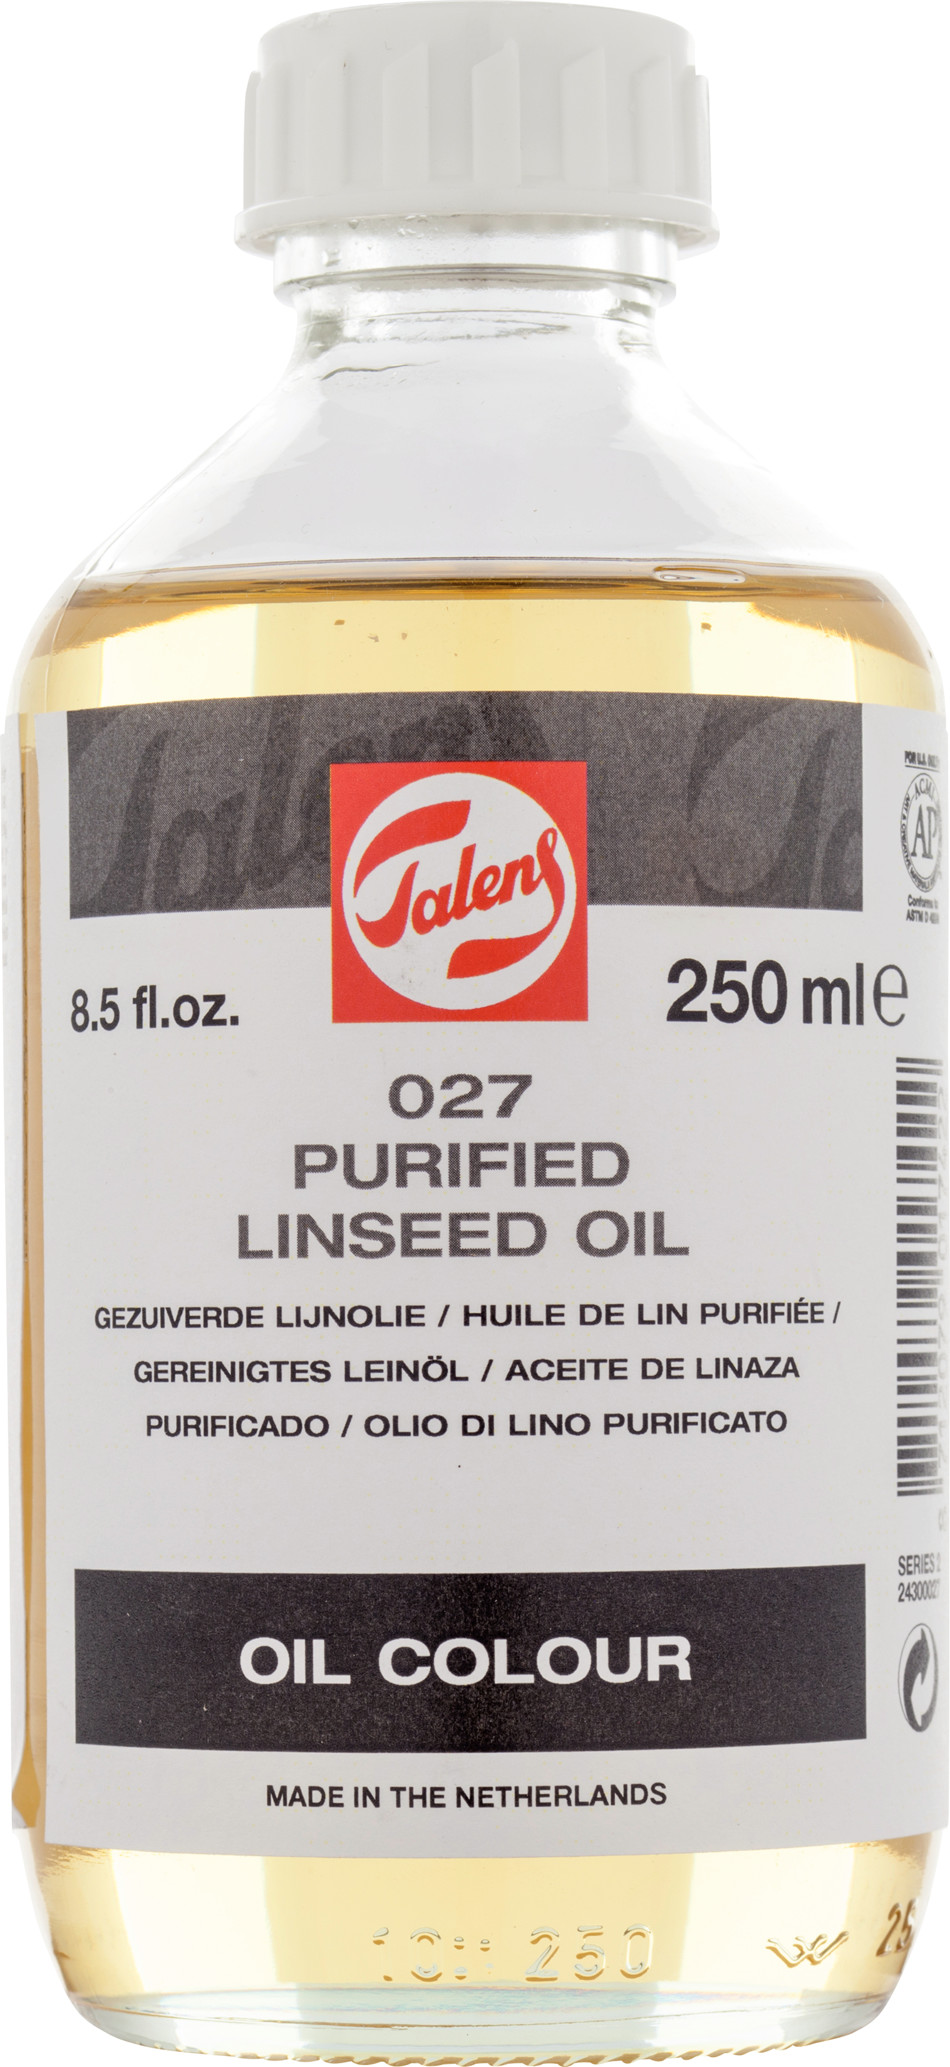 Purified Linseed Oil Bottle 250 ml